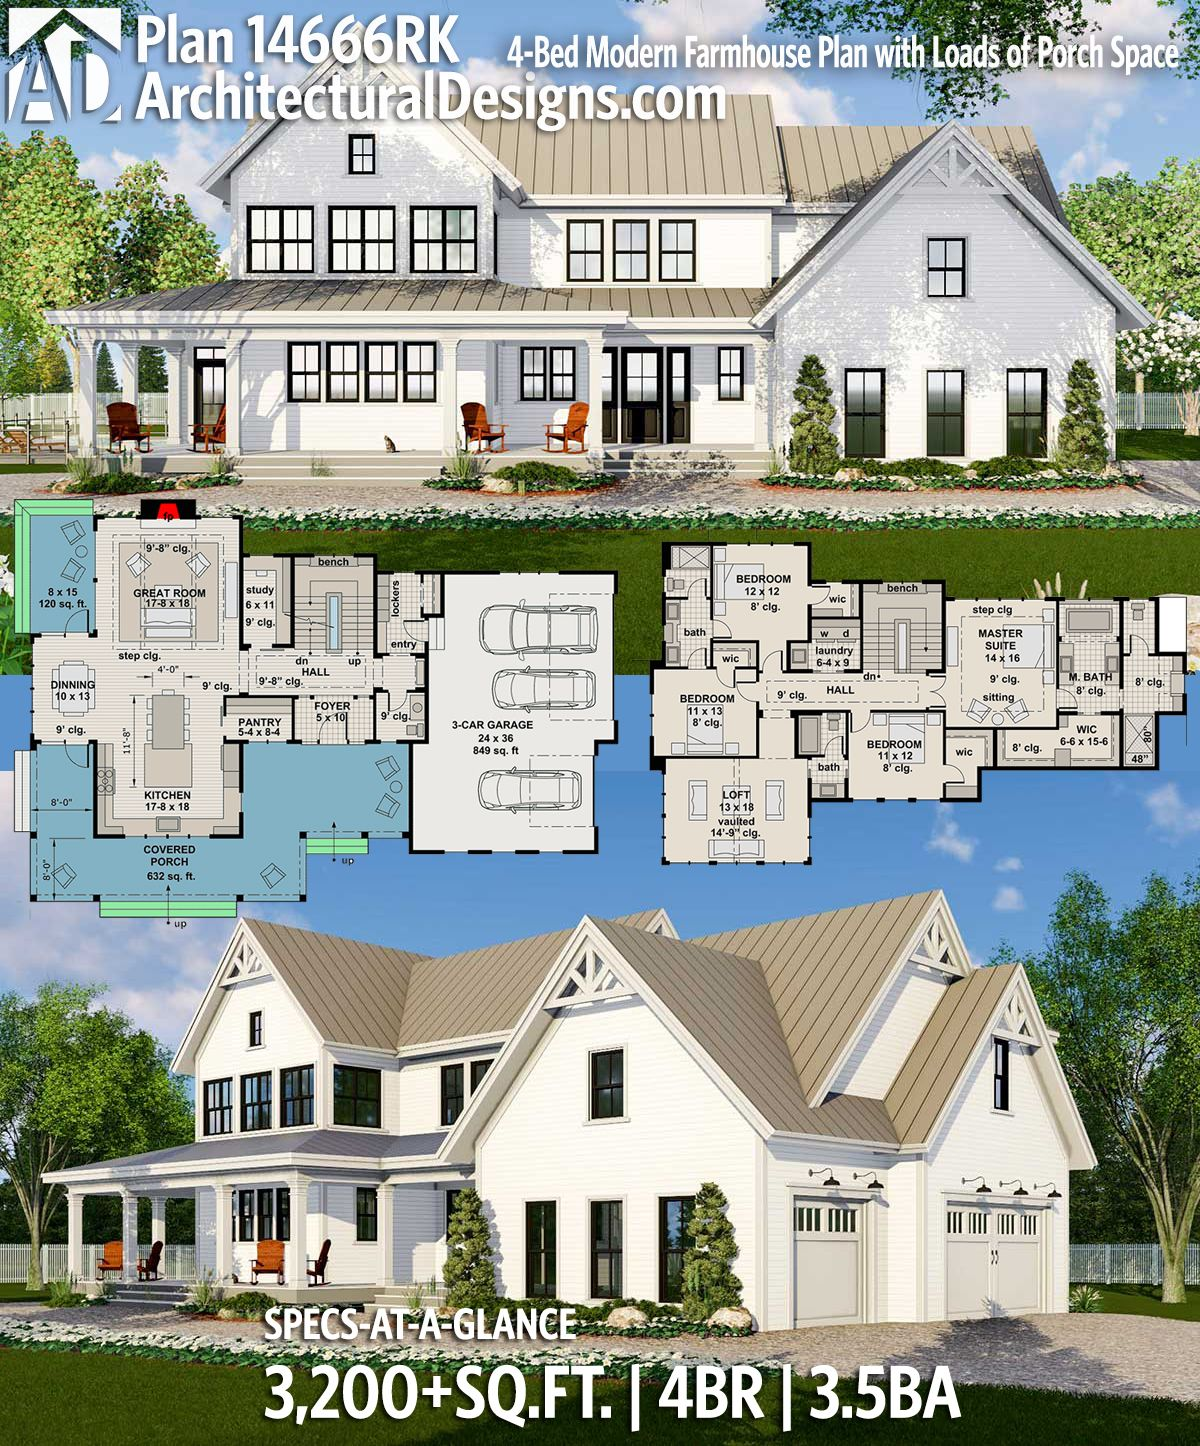 Architectural Designs House Plan 14666rk Gives You 4 Beds 3 5